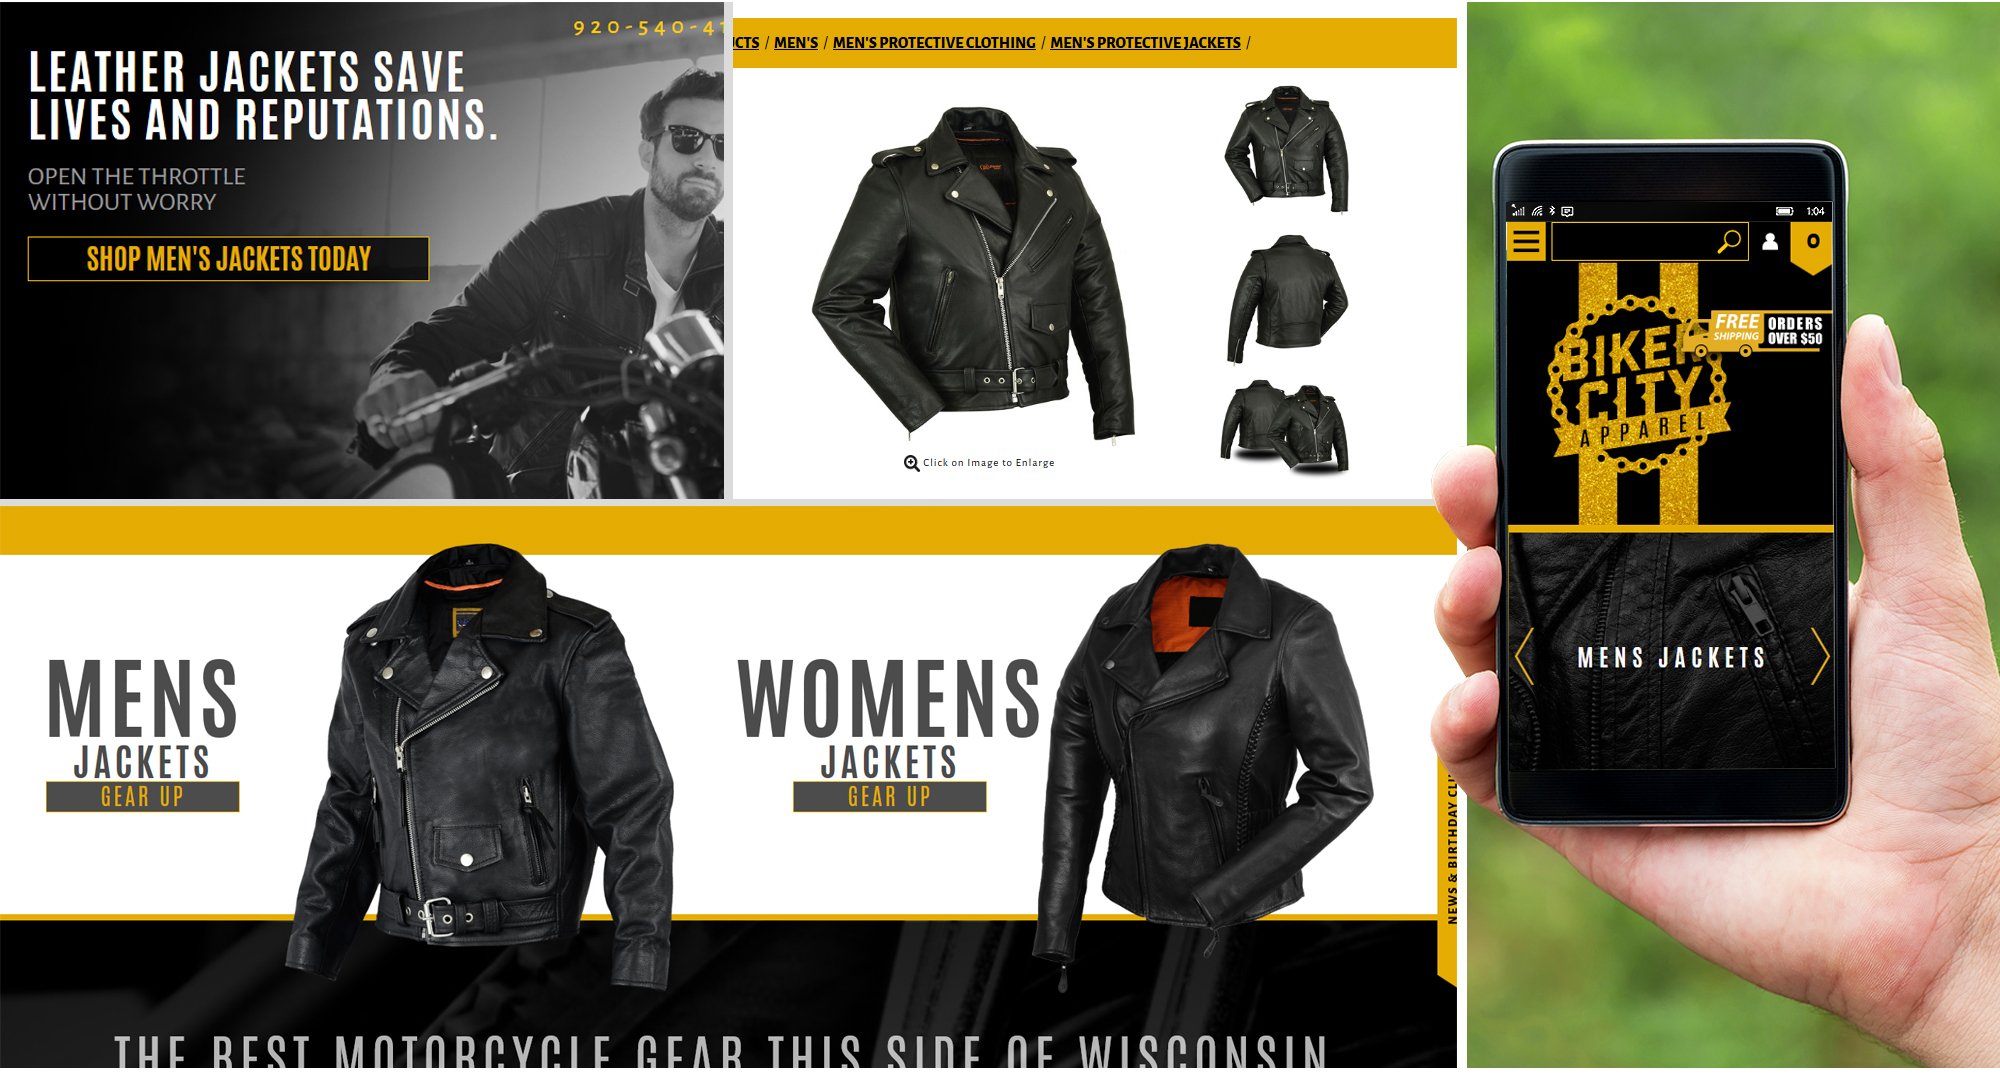 Milwaukee web marketing for Motorcycle Apperal and Gear